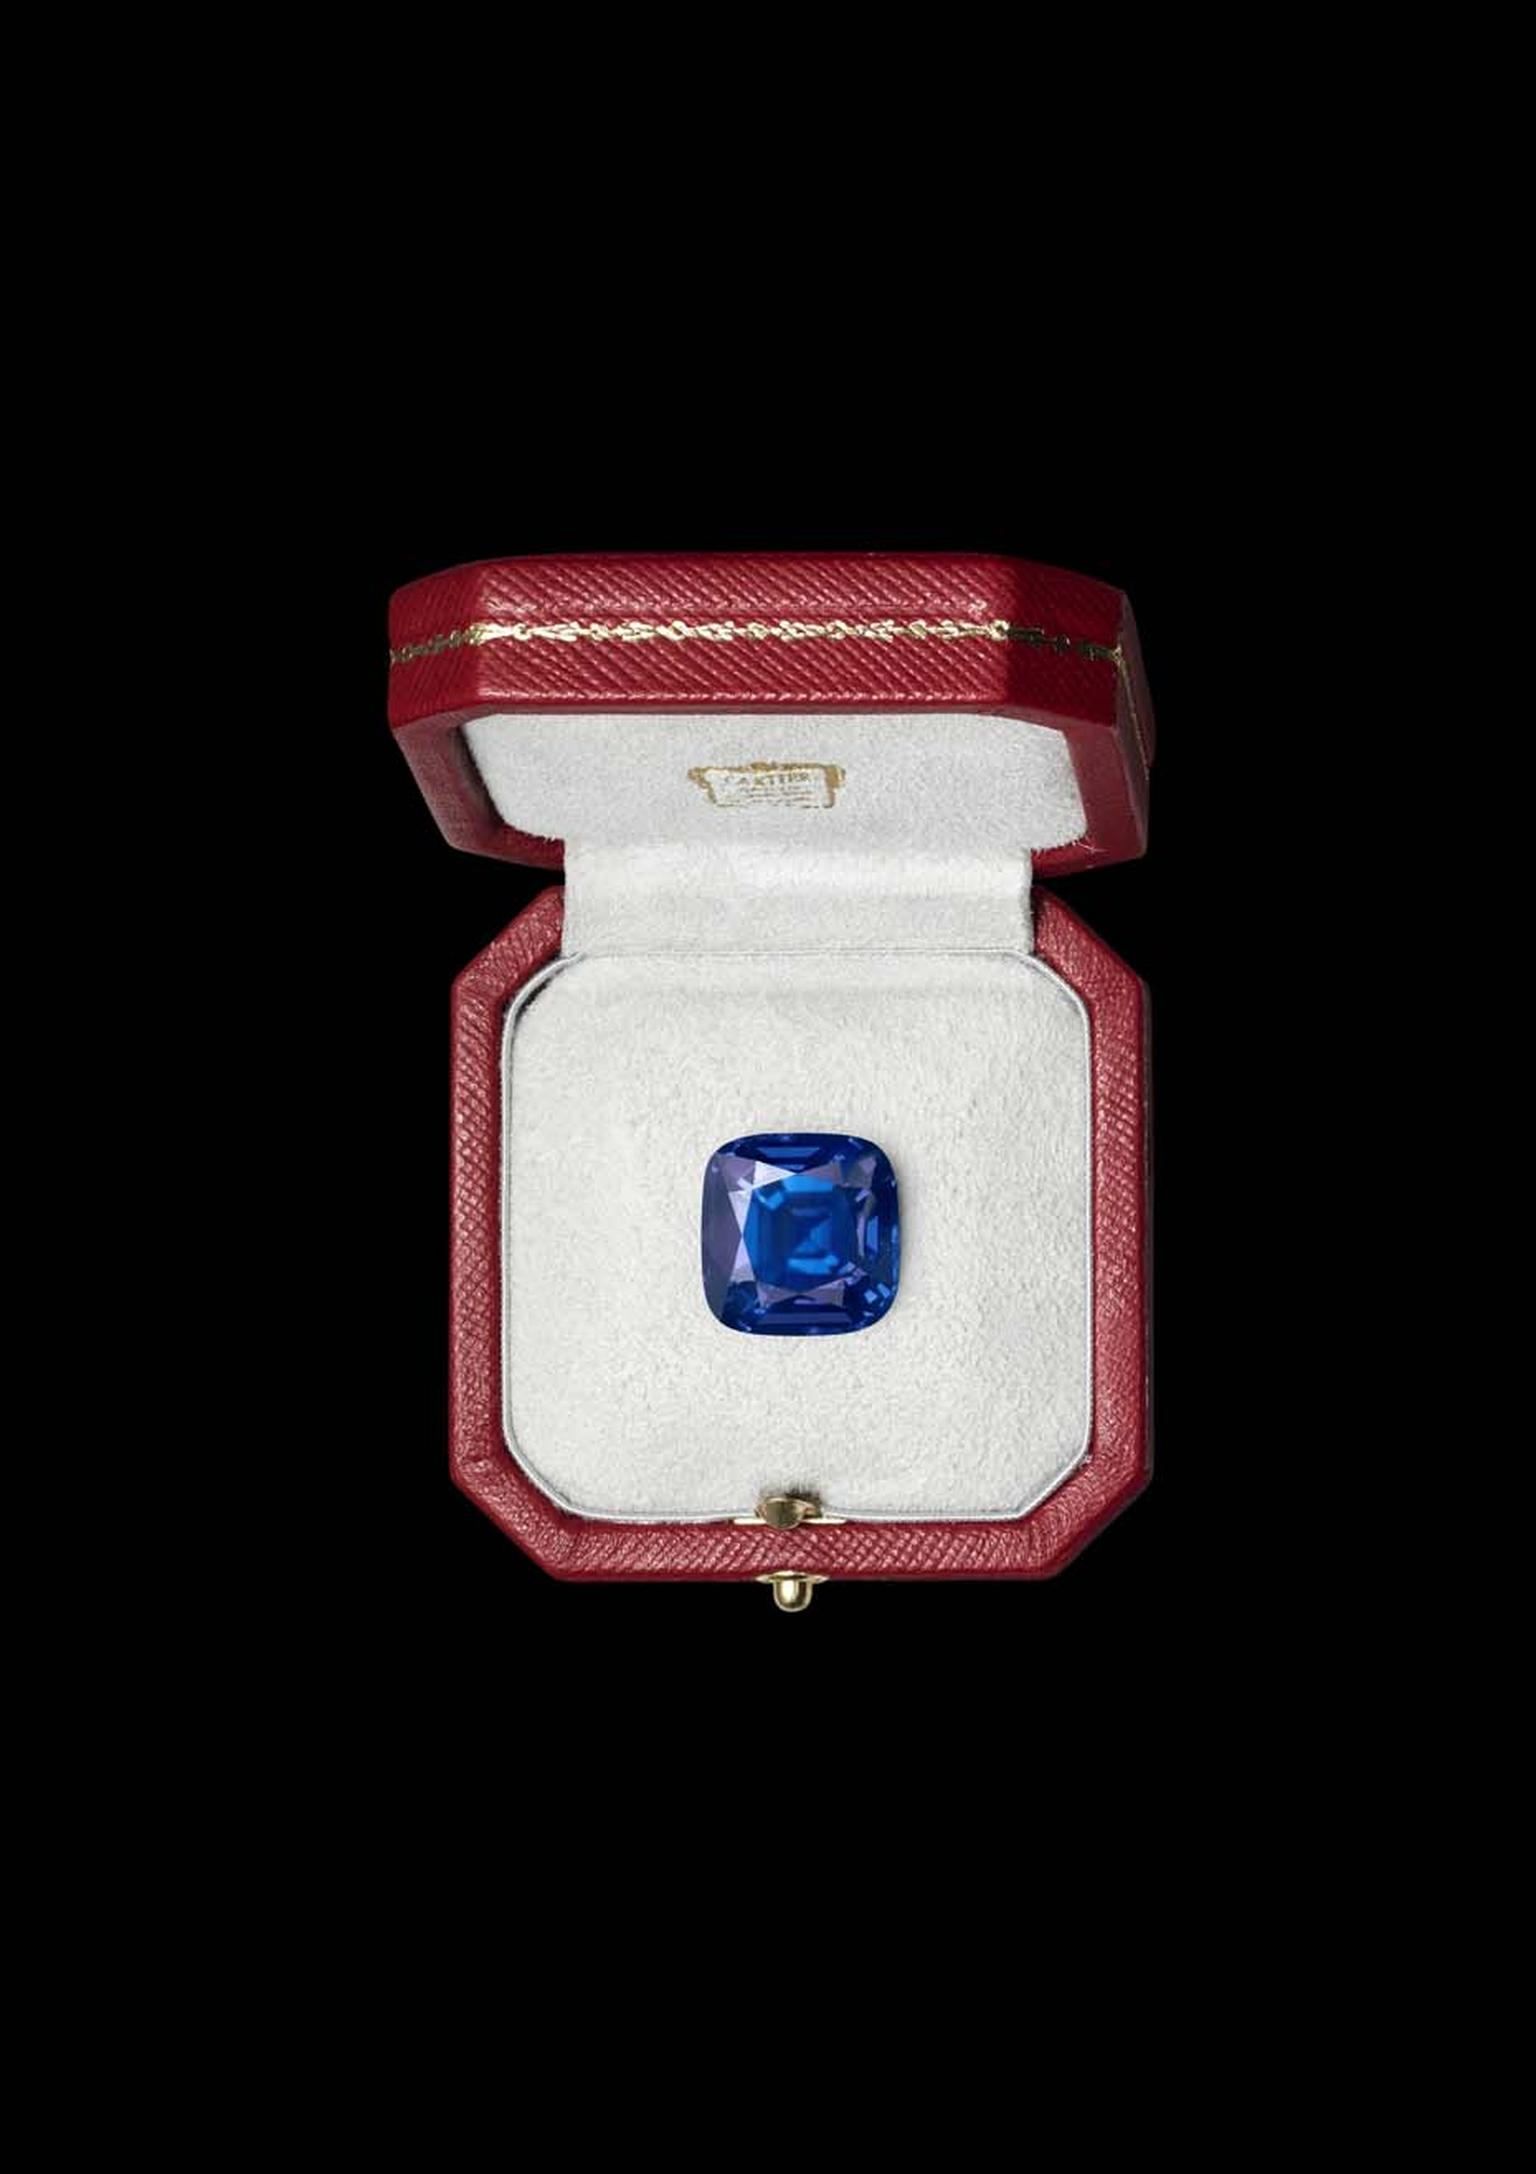 The 29ct sapphire from Kashmir in Cartier's Bleu-Bleuet ring is extremely rare because the Kashmir mine from which it hails - situated at an altitude of 4,000m in the Himalayas – has almost been depleted.